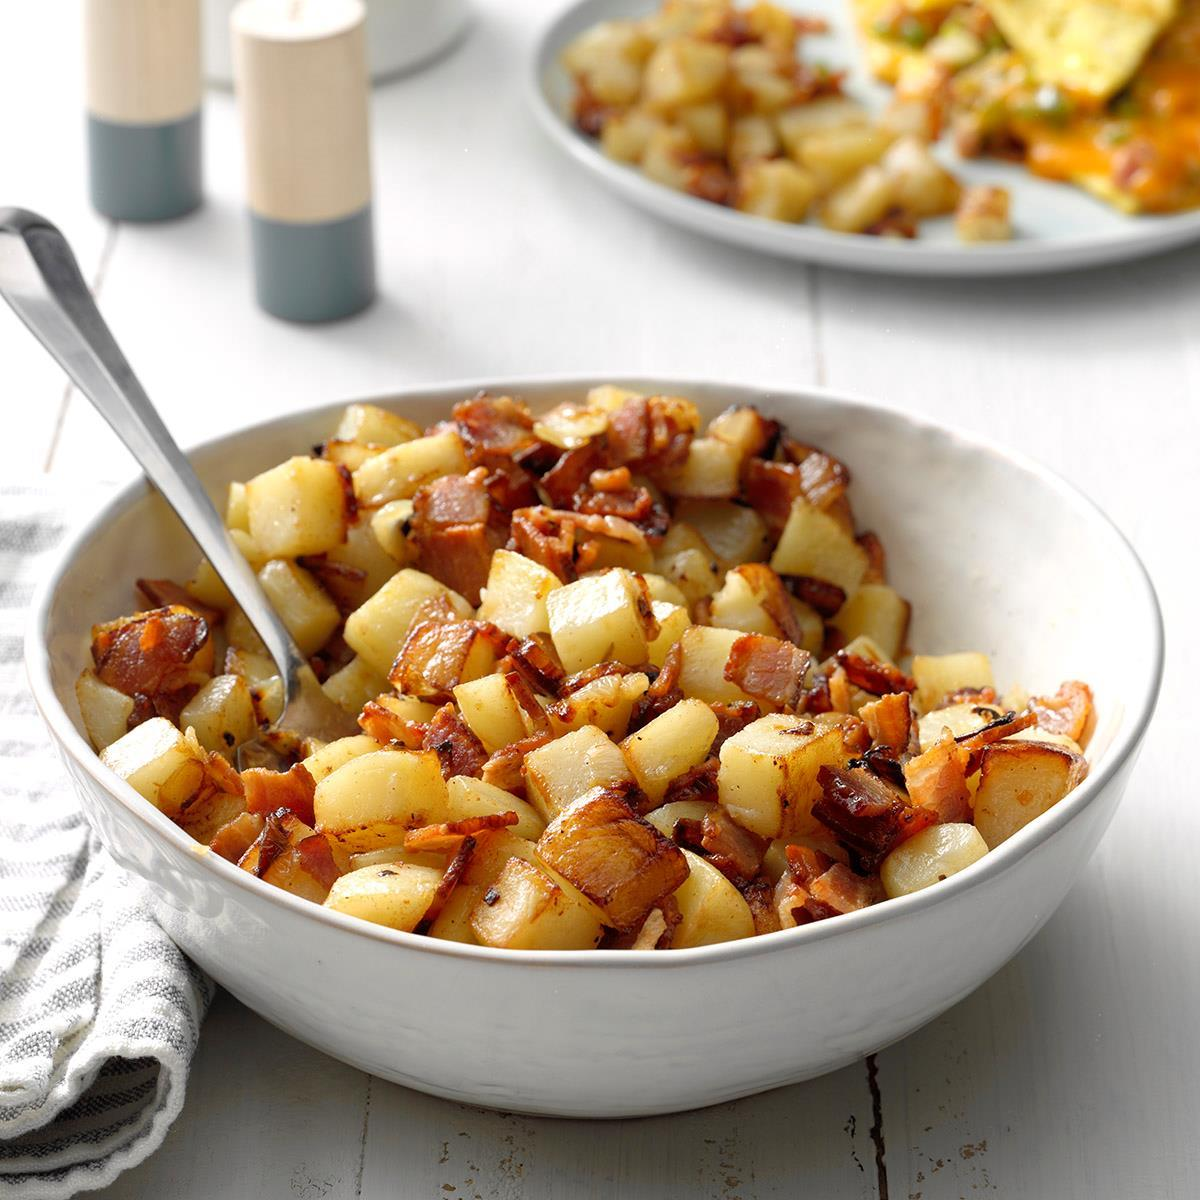 Click here for the recipe. Home Fries Recipe How To Make It Taste Of Home